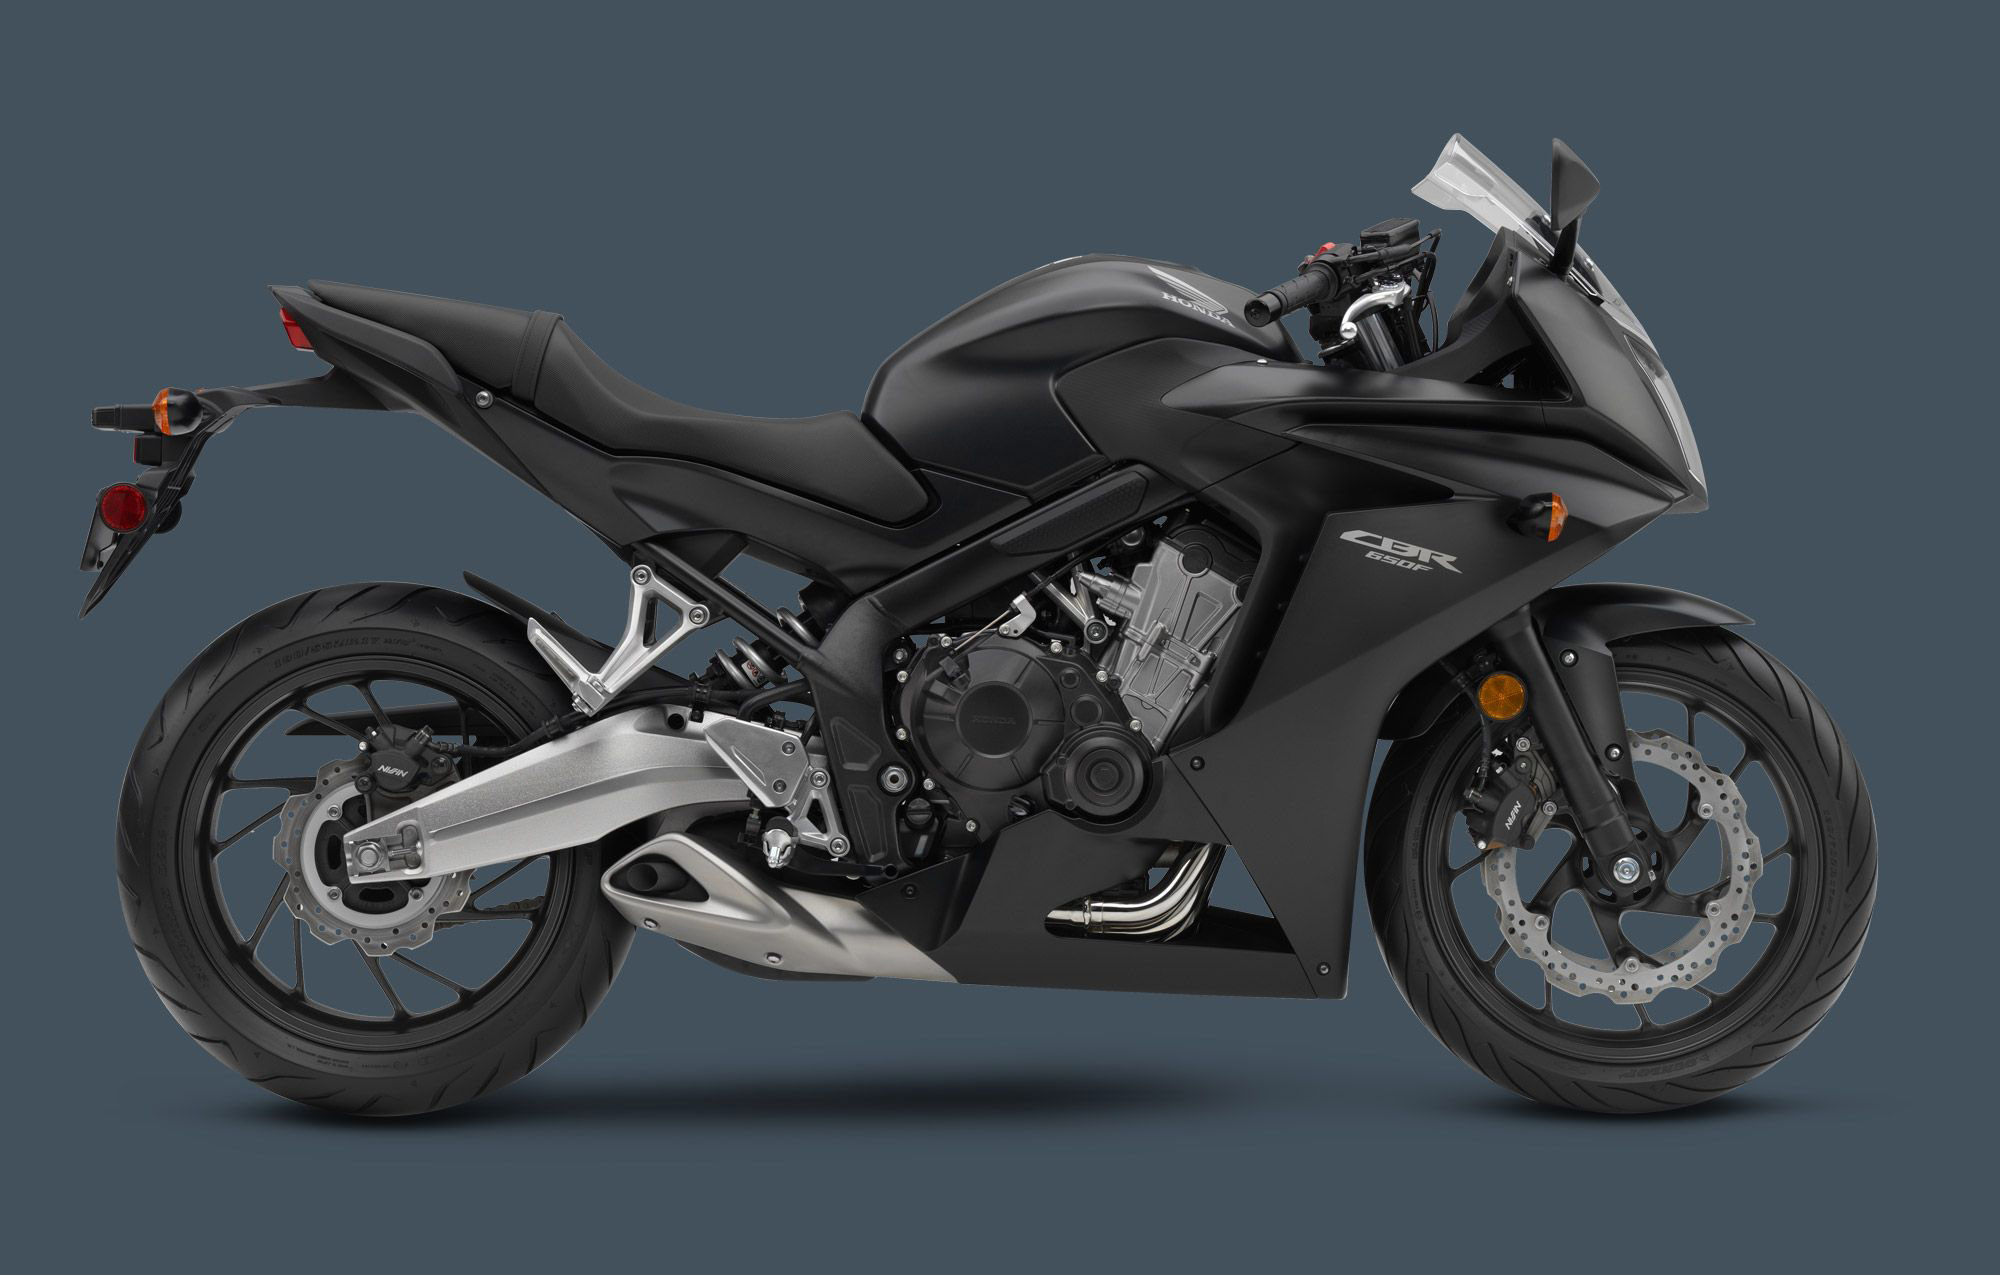 honda cbr 650 f abs 2014 in schwarz bei road monkeys. Black Bedroom Furniture Sets. Home Design Ideas